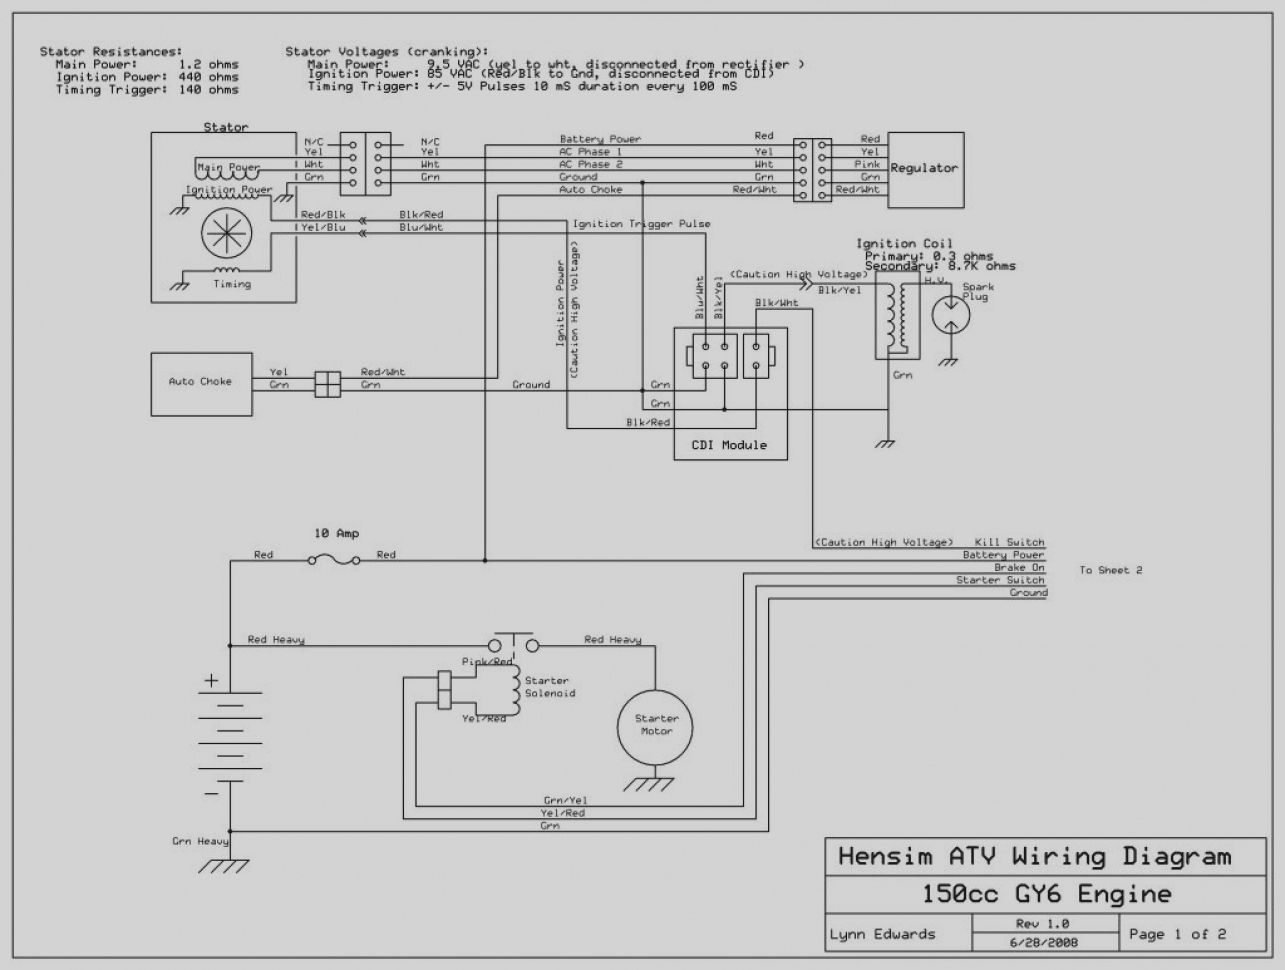 Honda Ignition Diagram | Wiring Diagrams on fan switch wiring diagram, turn signal switch wiring diagram, ignition switch wiring diagram, key switch wiring diagram, heater switch wiring diagram, headlight switch wiring diagram,